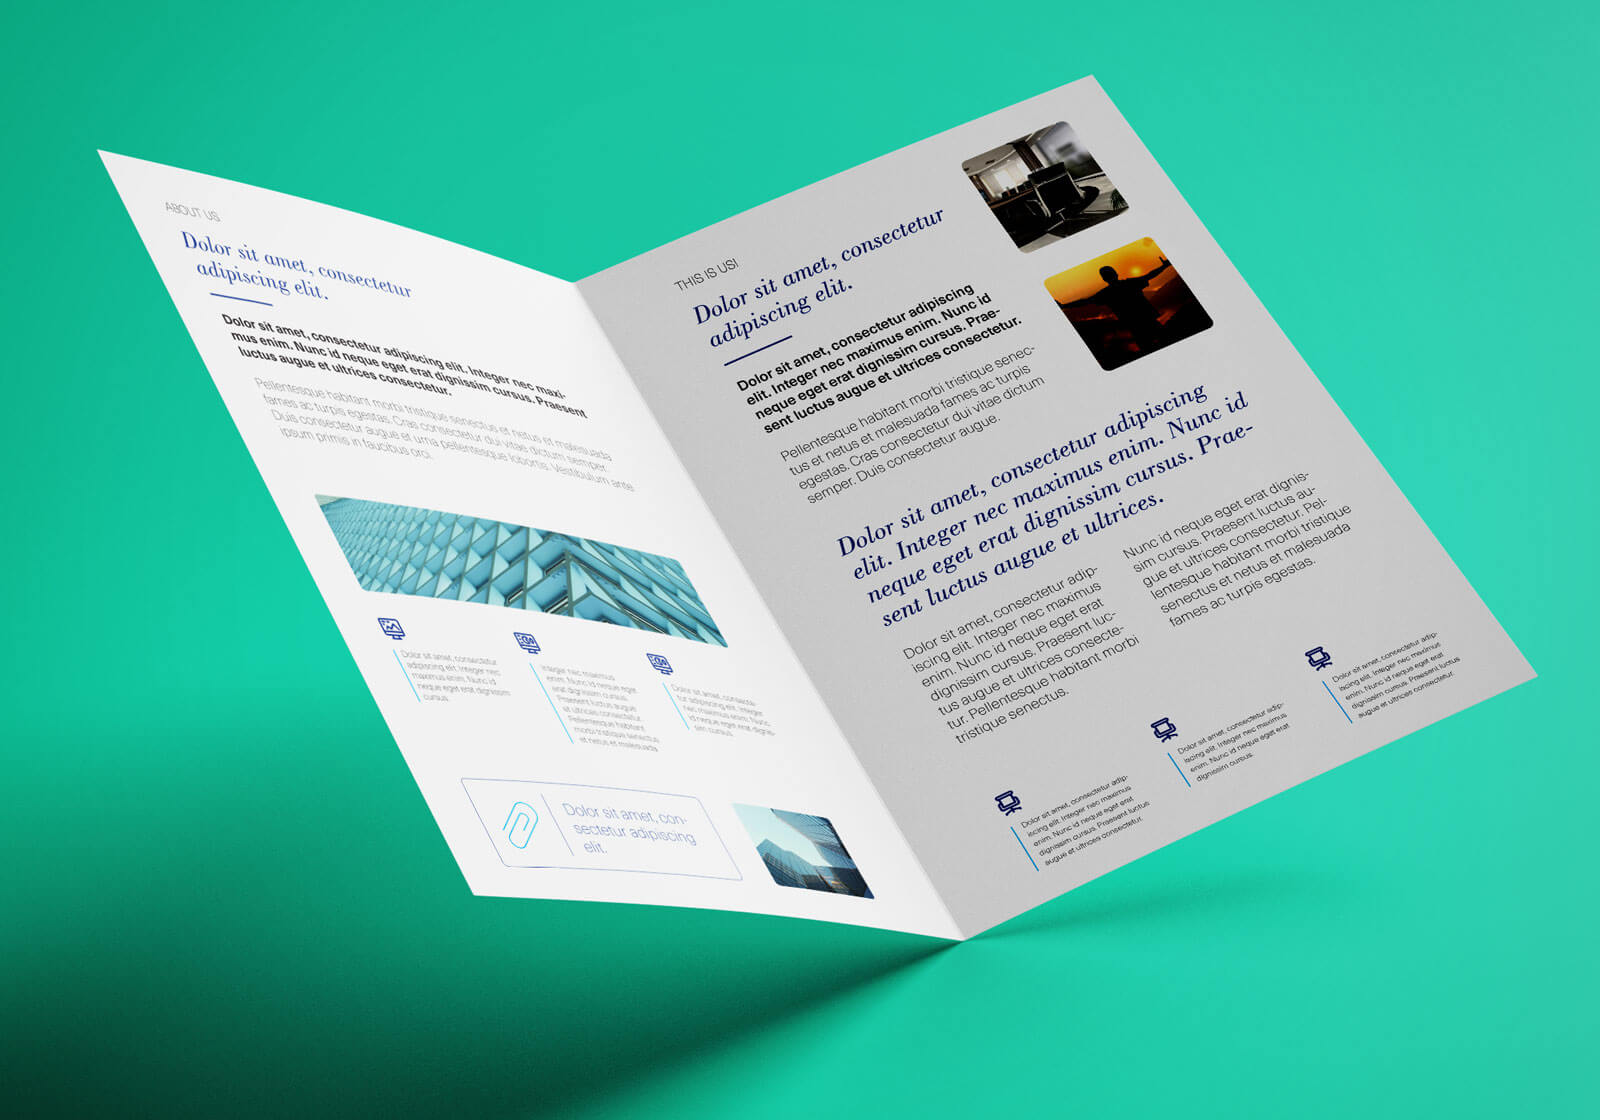 Free Bi Fold A4 Brochure Mockup Psd - Good Mockups Within 2 Fold Brochure Template Psd